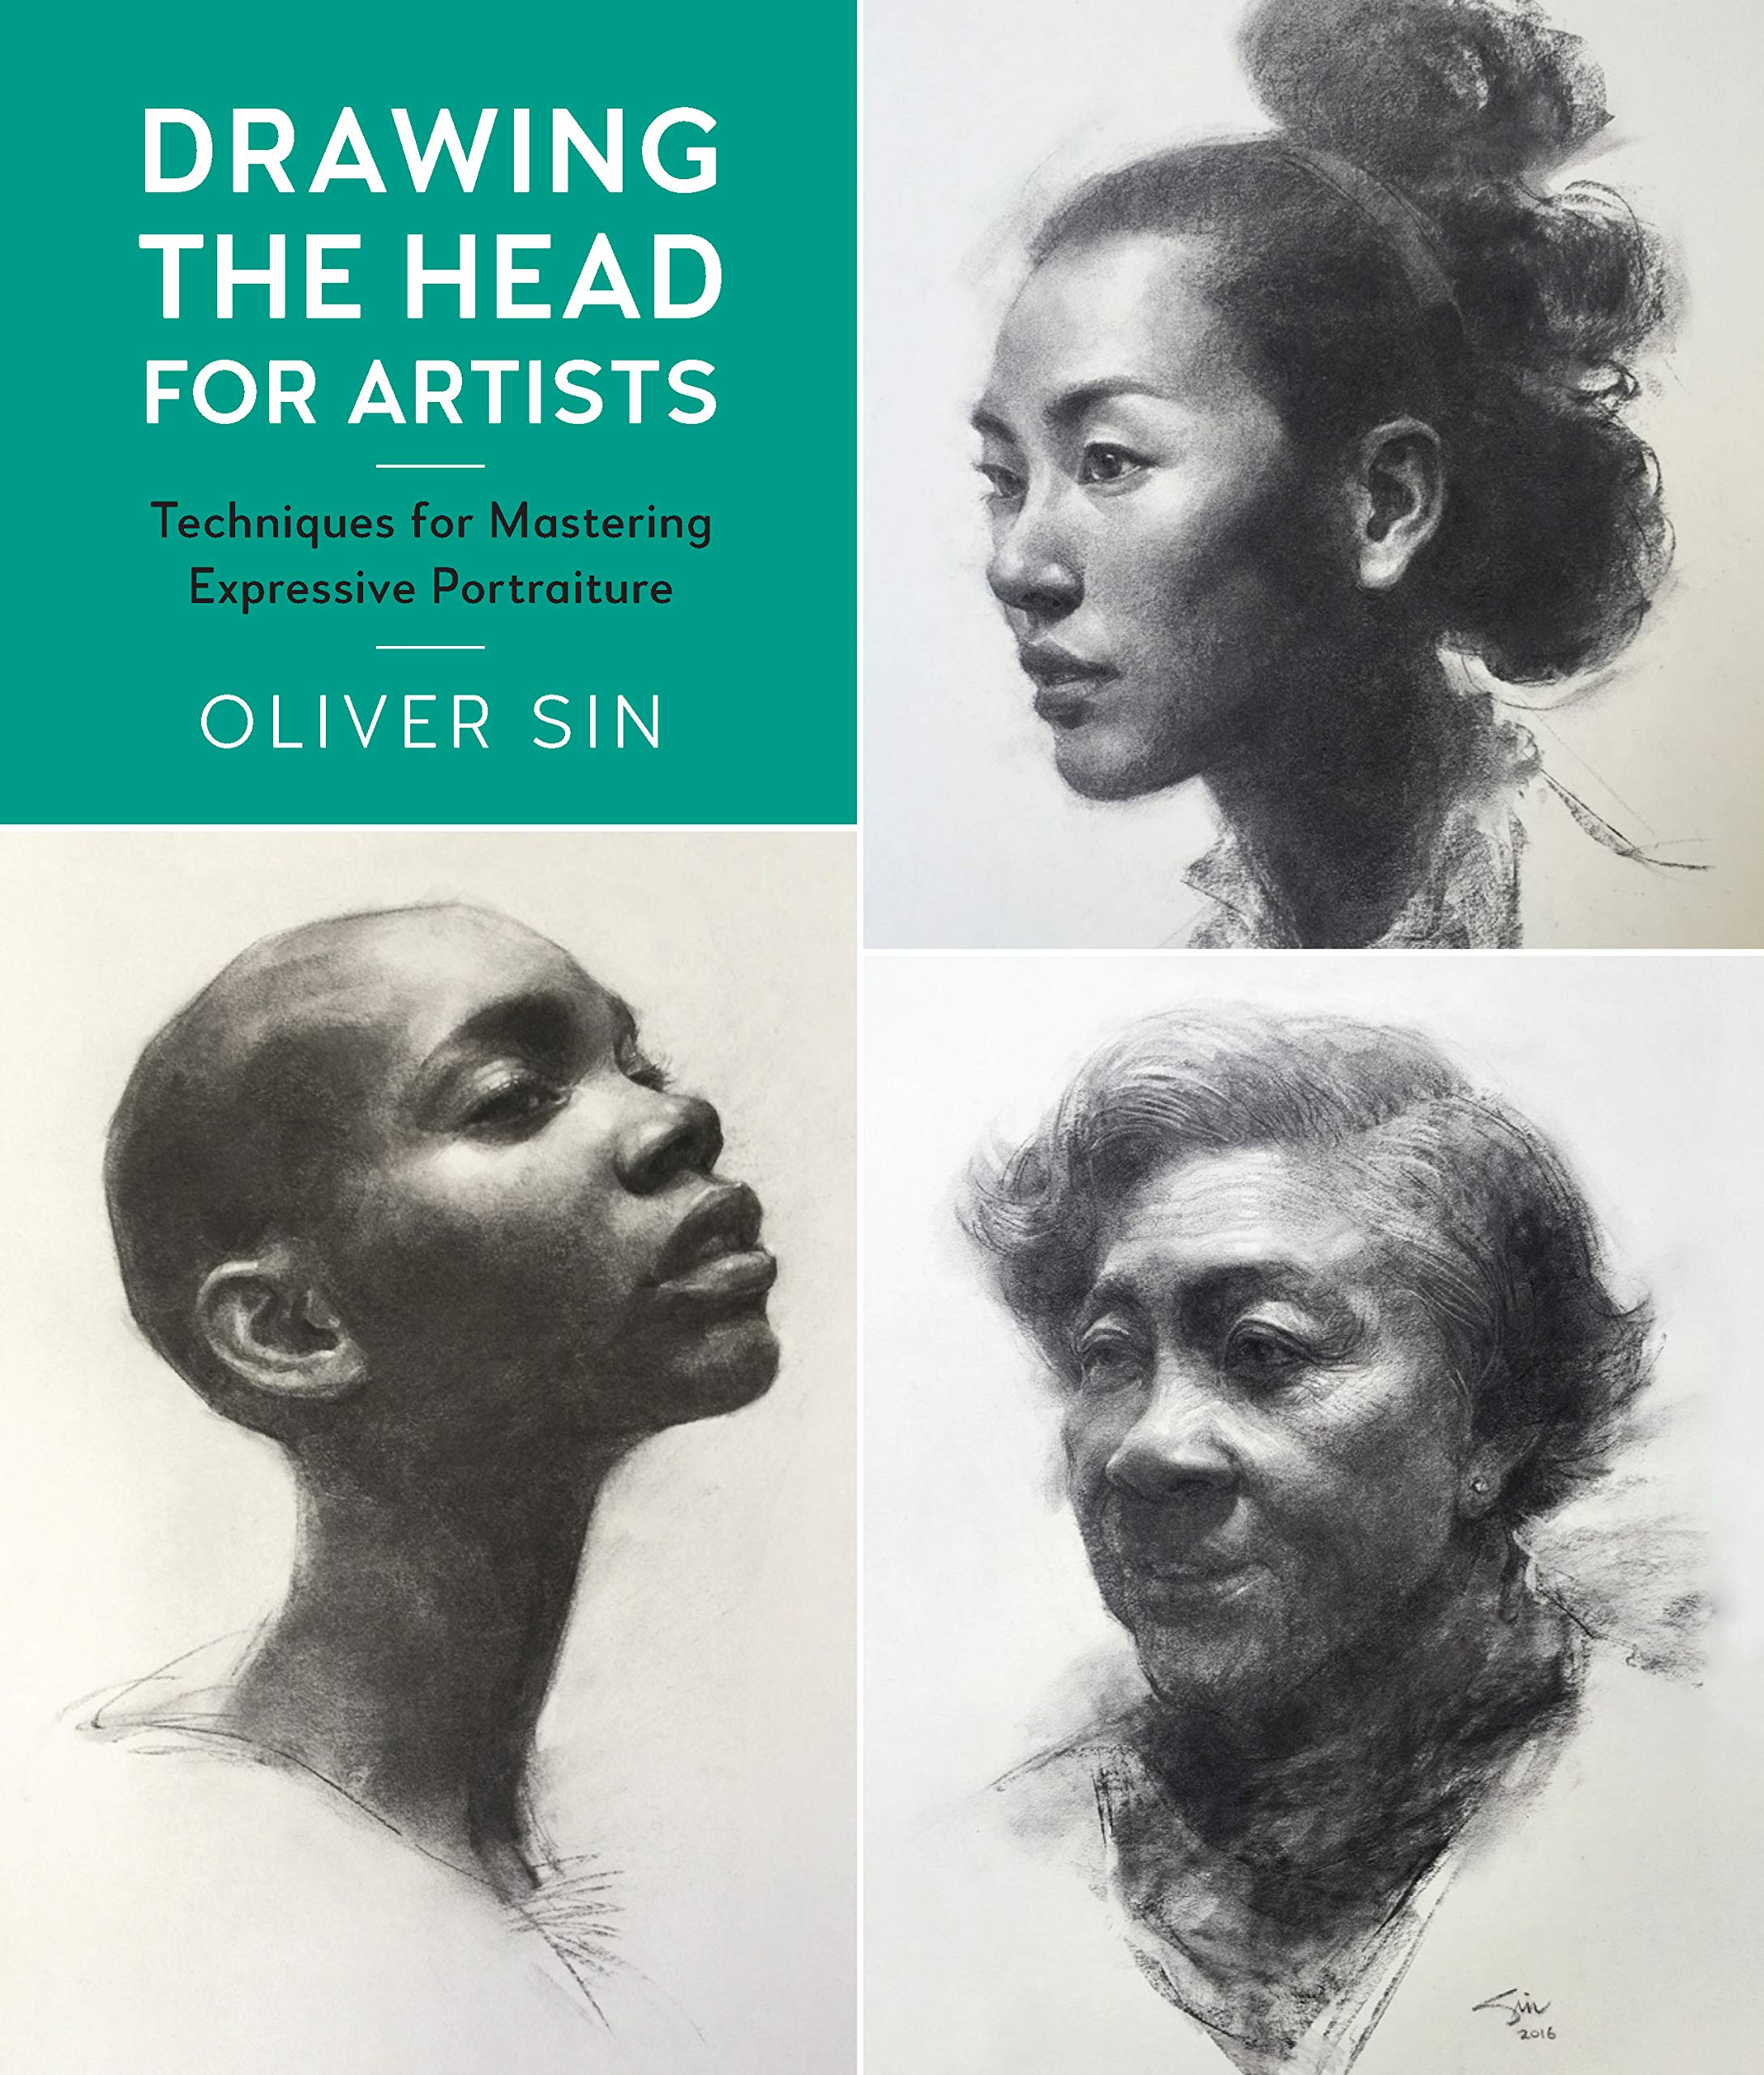 Drawing the head for artists techniques for mastering expressive